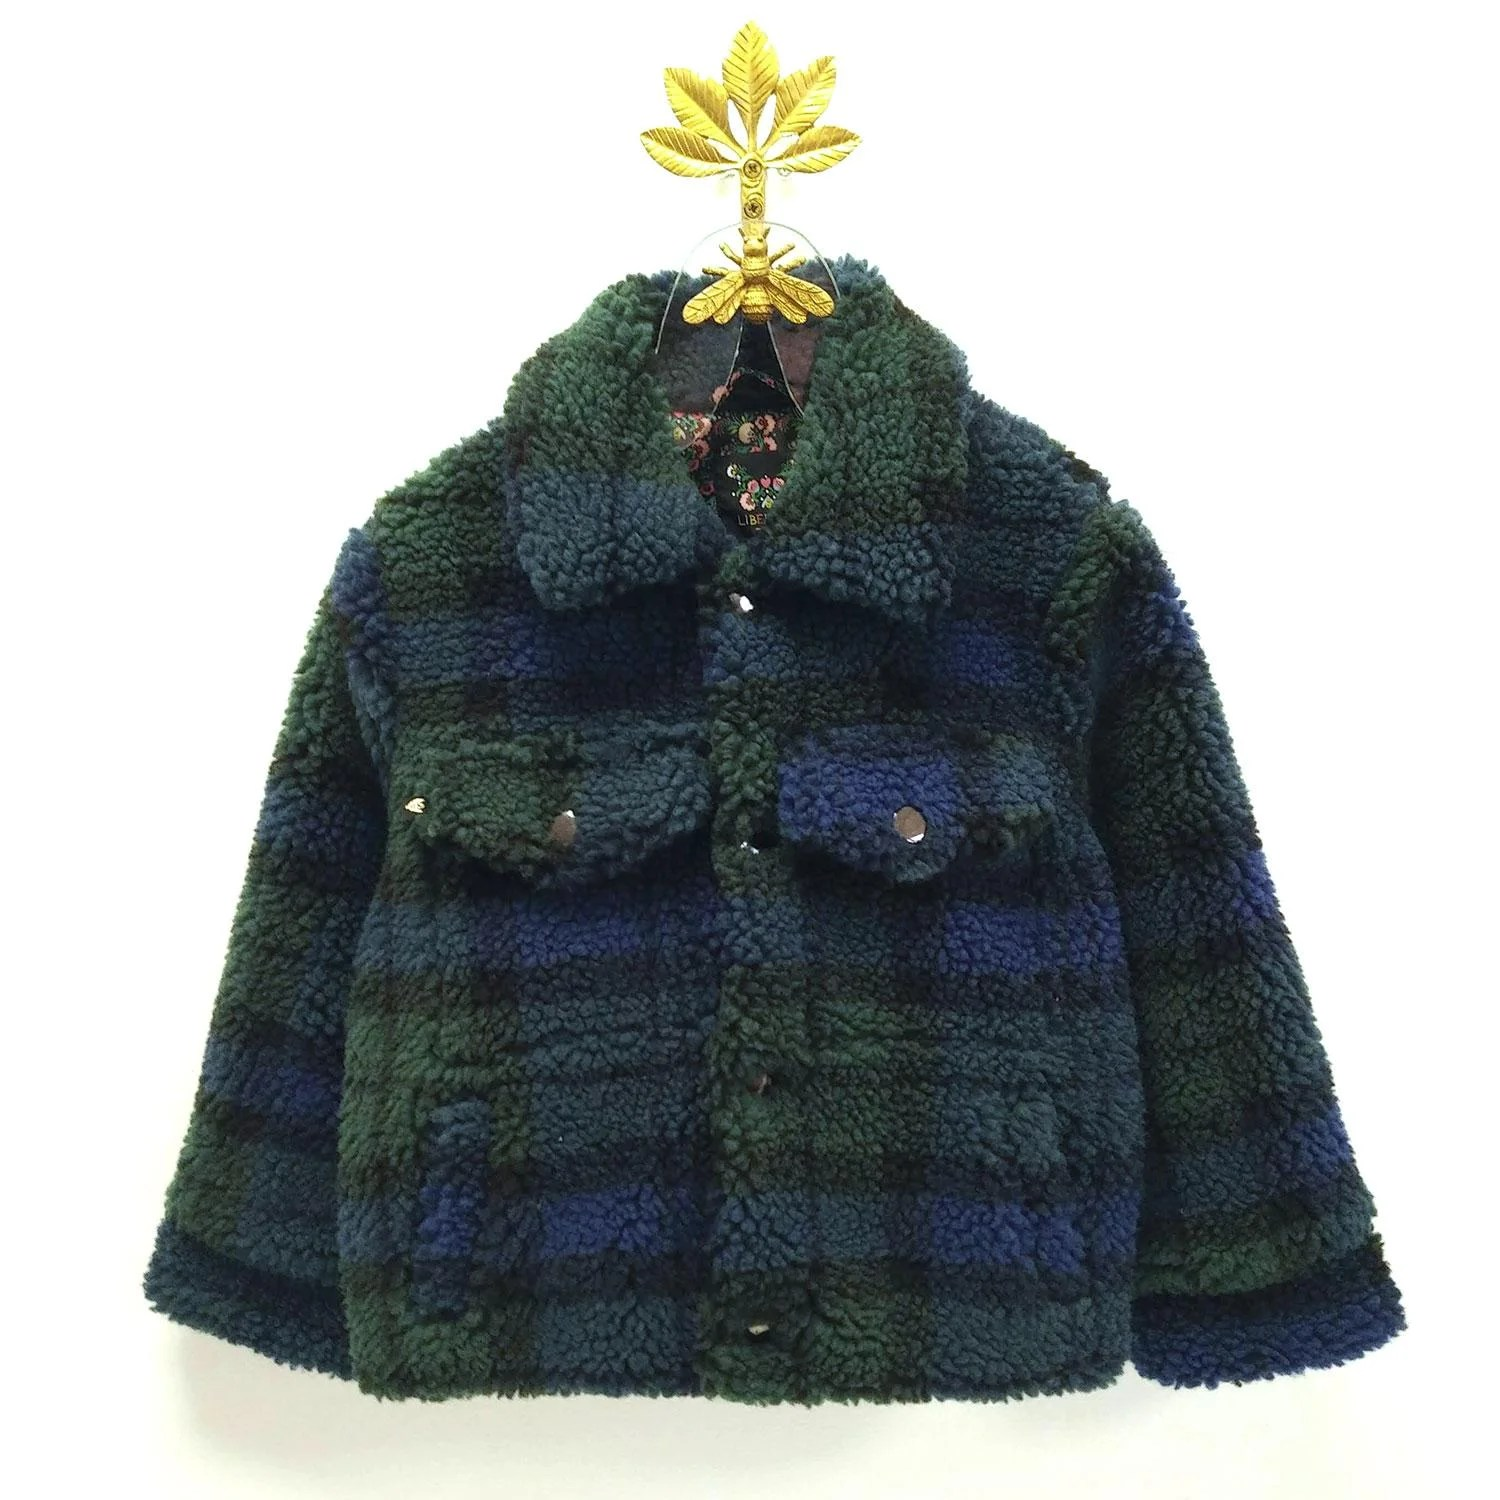 Teddy Plaid Juni Is A Workwear Jacket In A Plaid Patterned Chunky Teddy Faux Fur